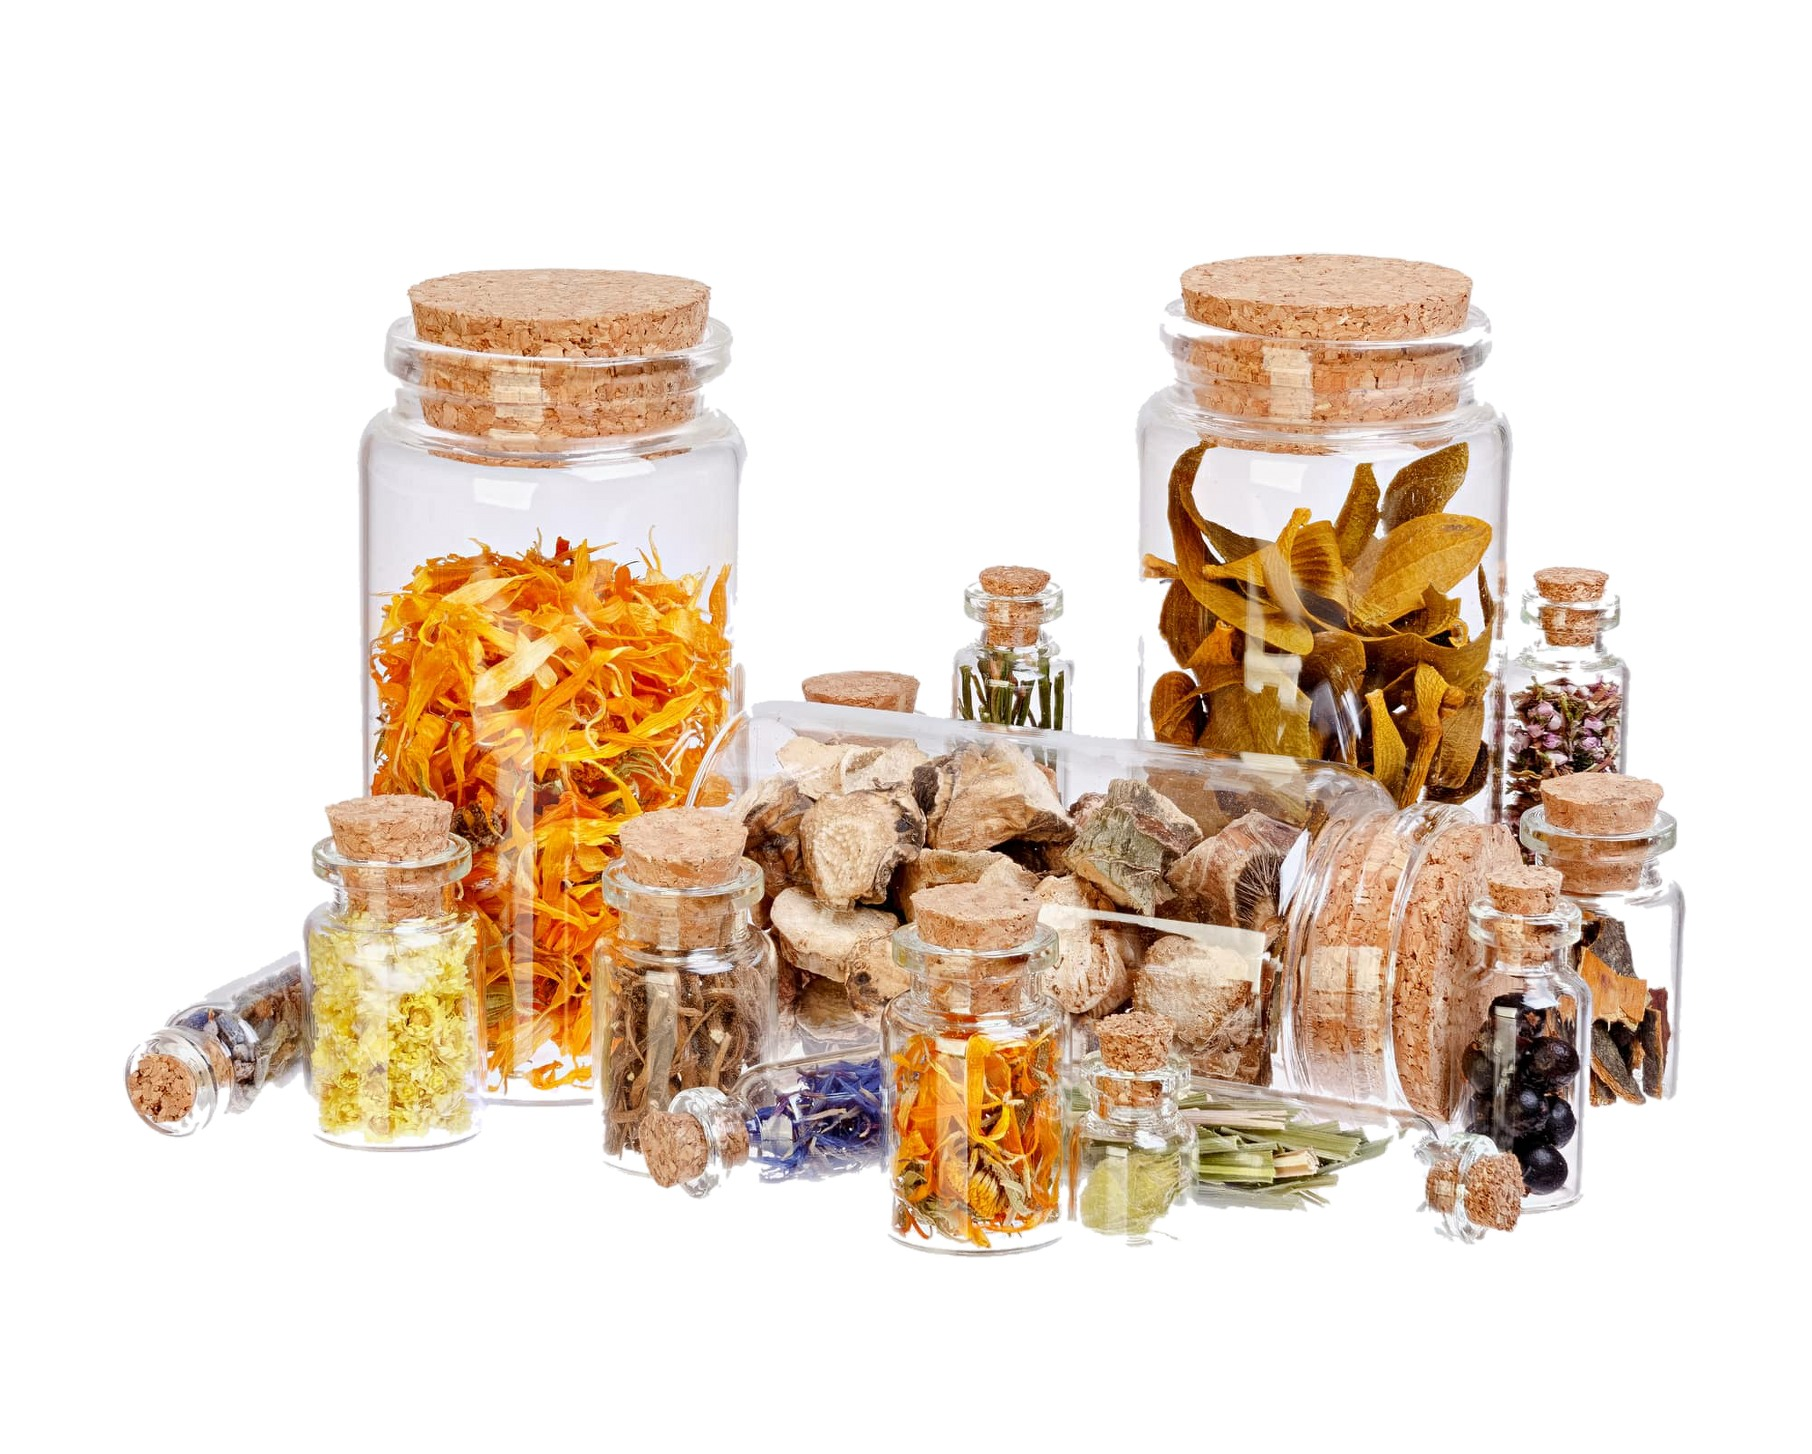 Herbs for women's health issues